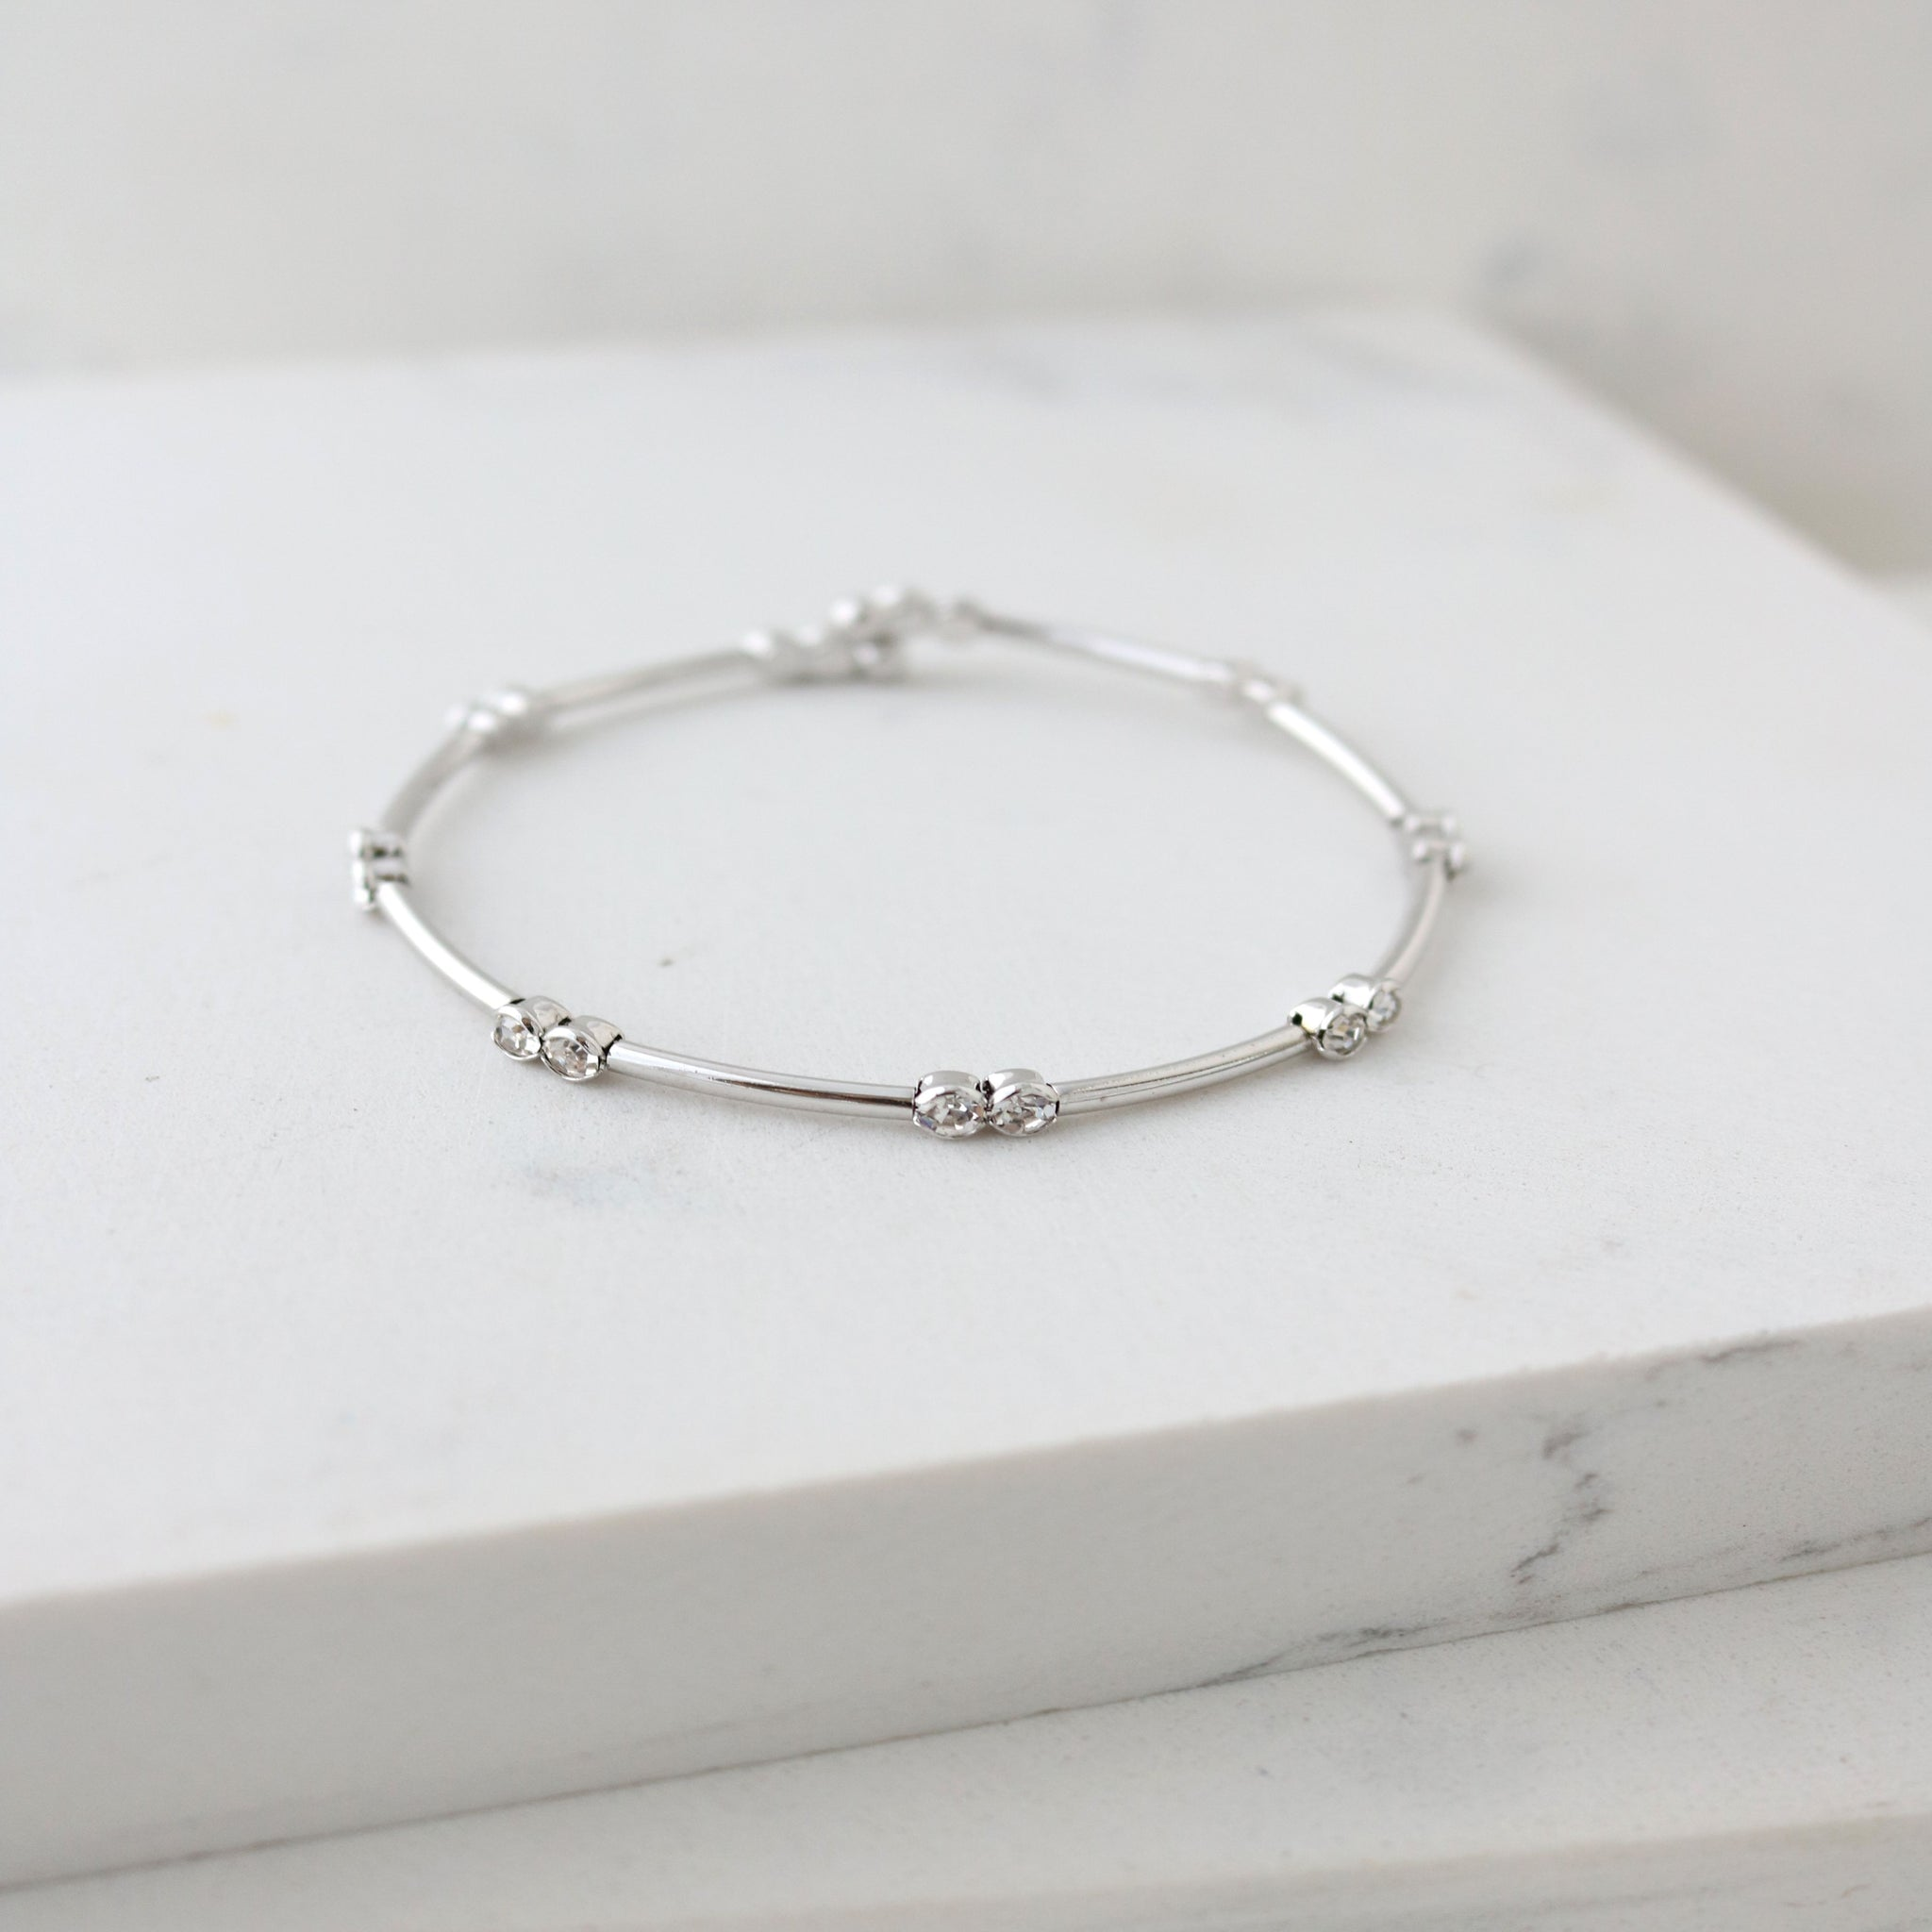 Lover's Tempo Bracelet Gemini Crystal Bangle - Silver